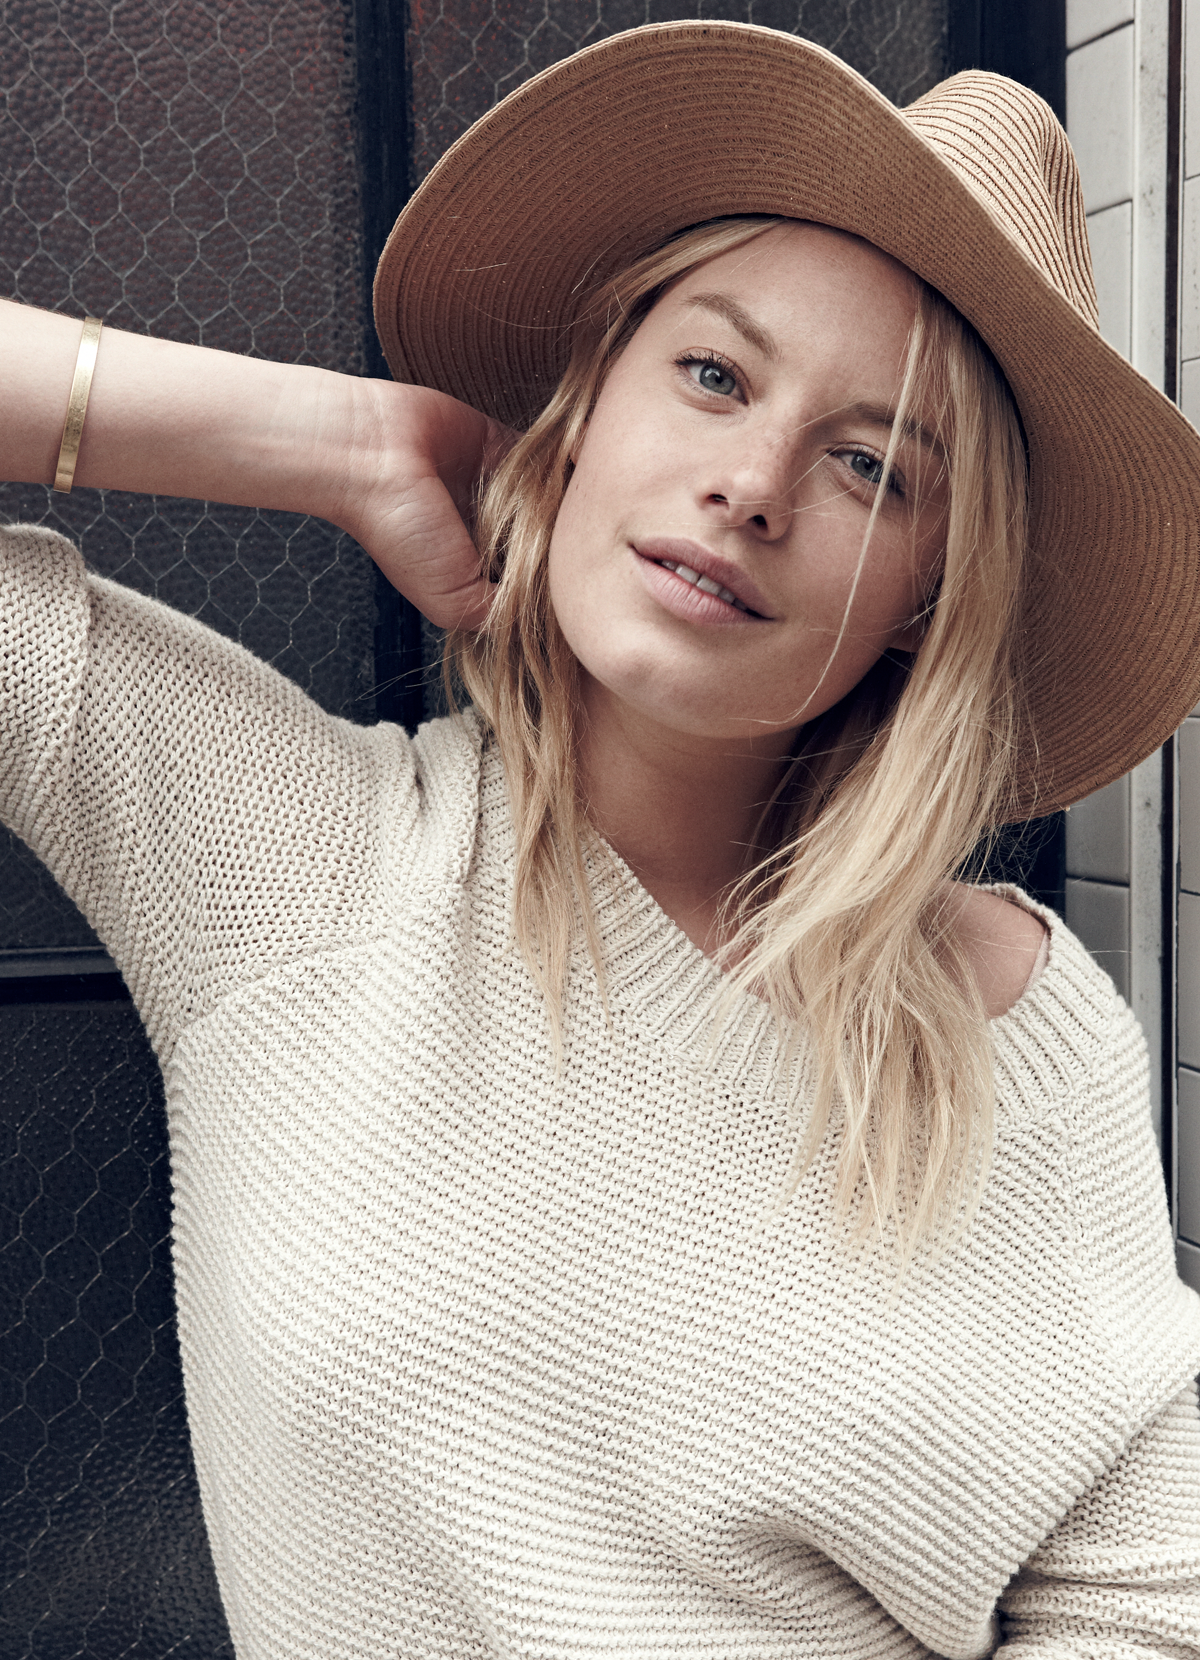 madewell et sézane, july 2015: french-american muse camille rowe wearing the pullover sweater + madewell straw mesa hat. #madewellxsezane